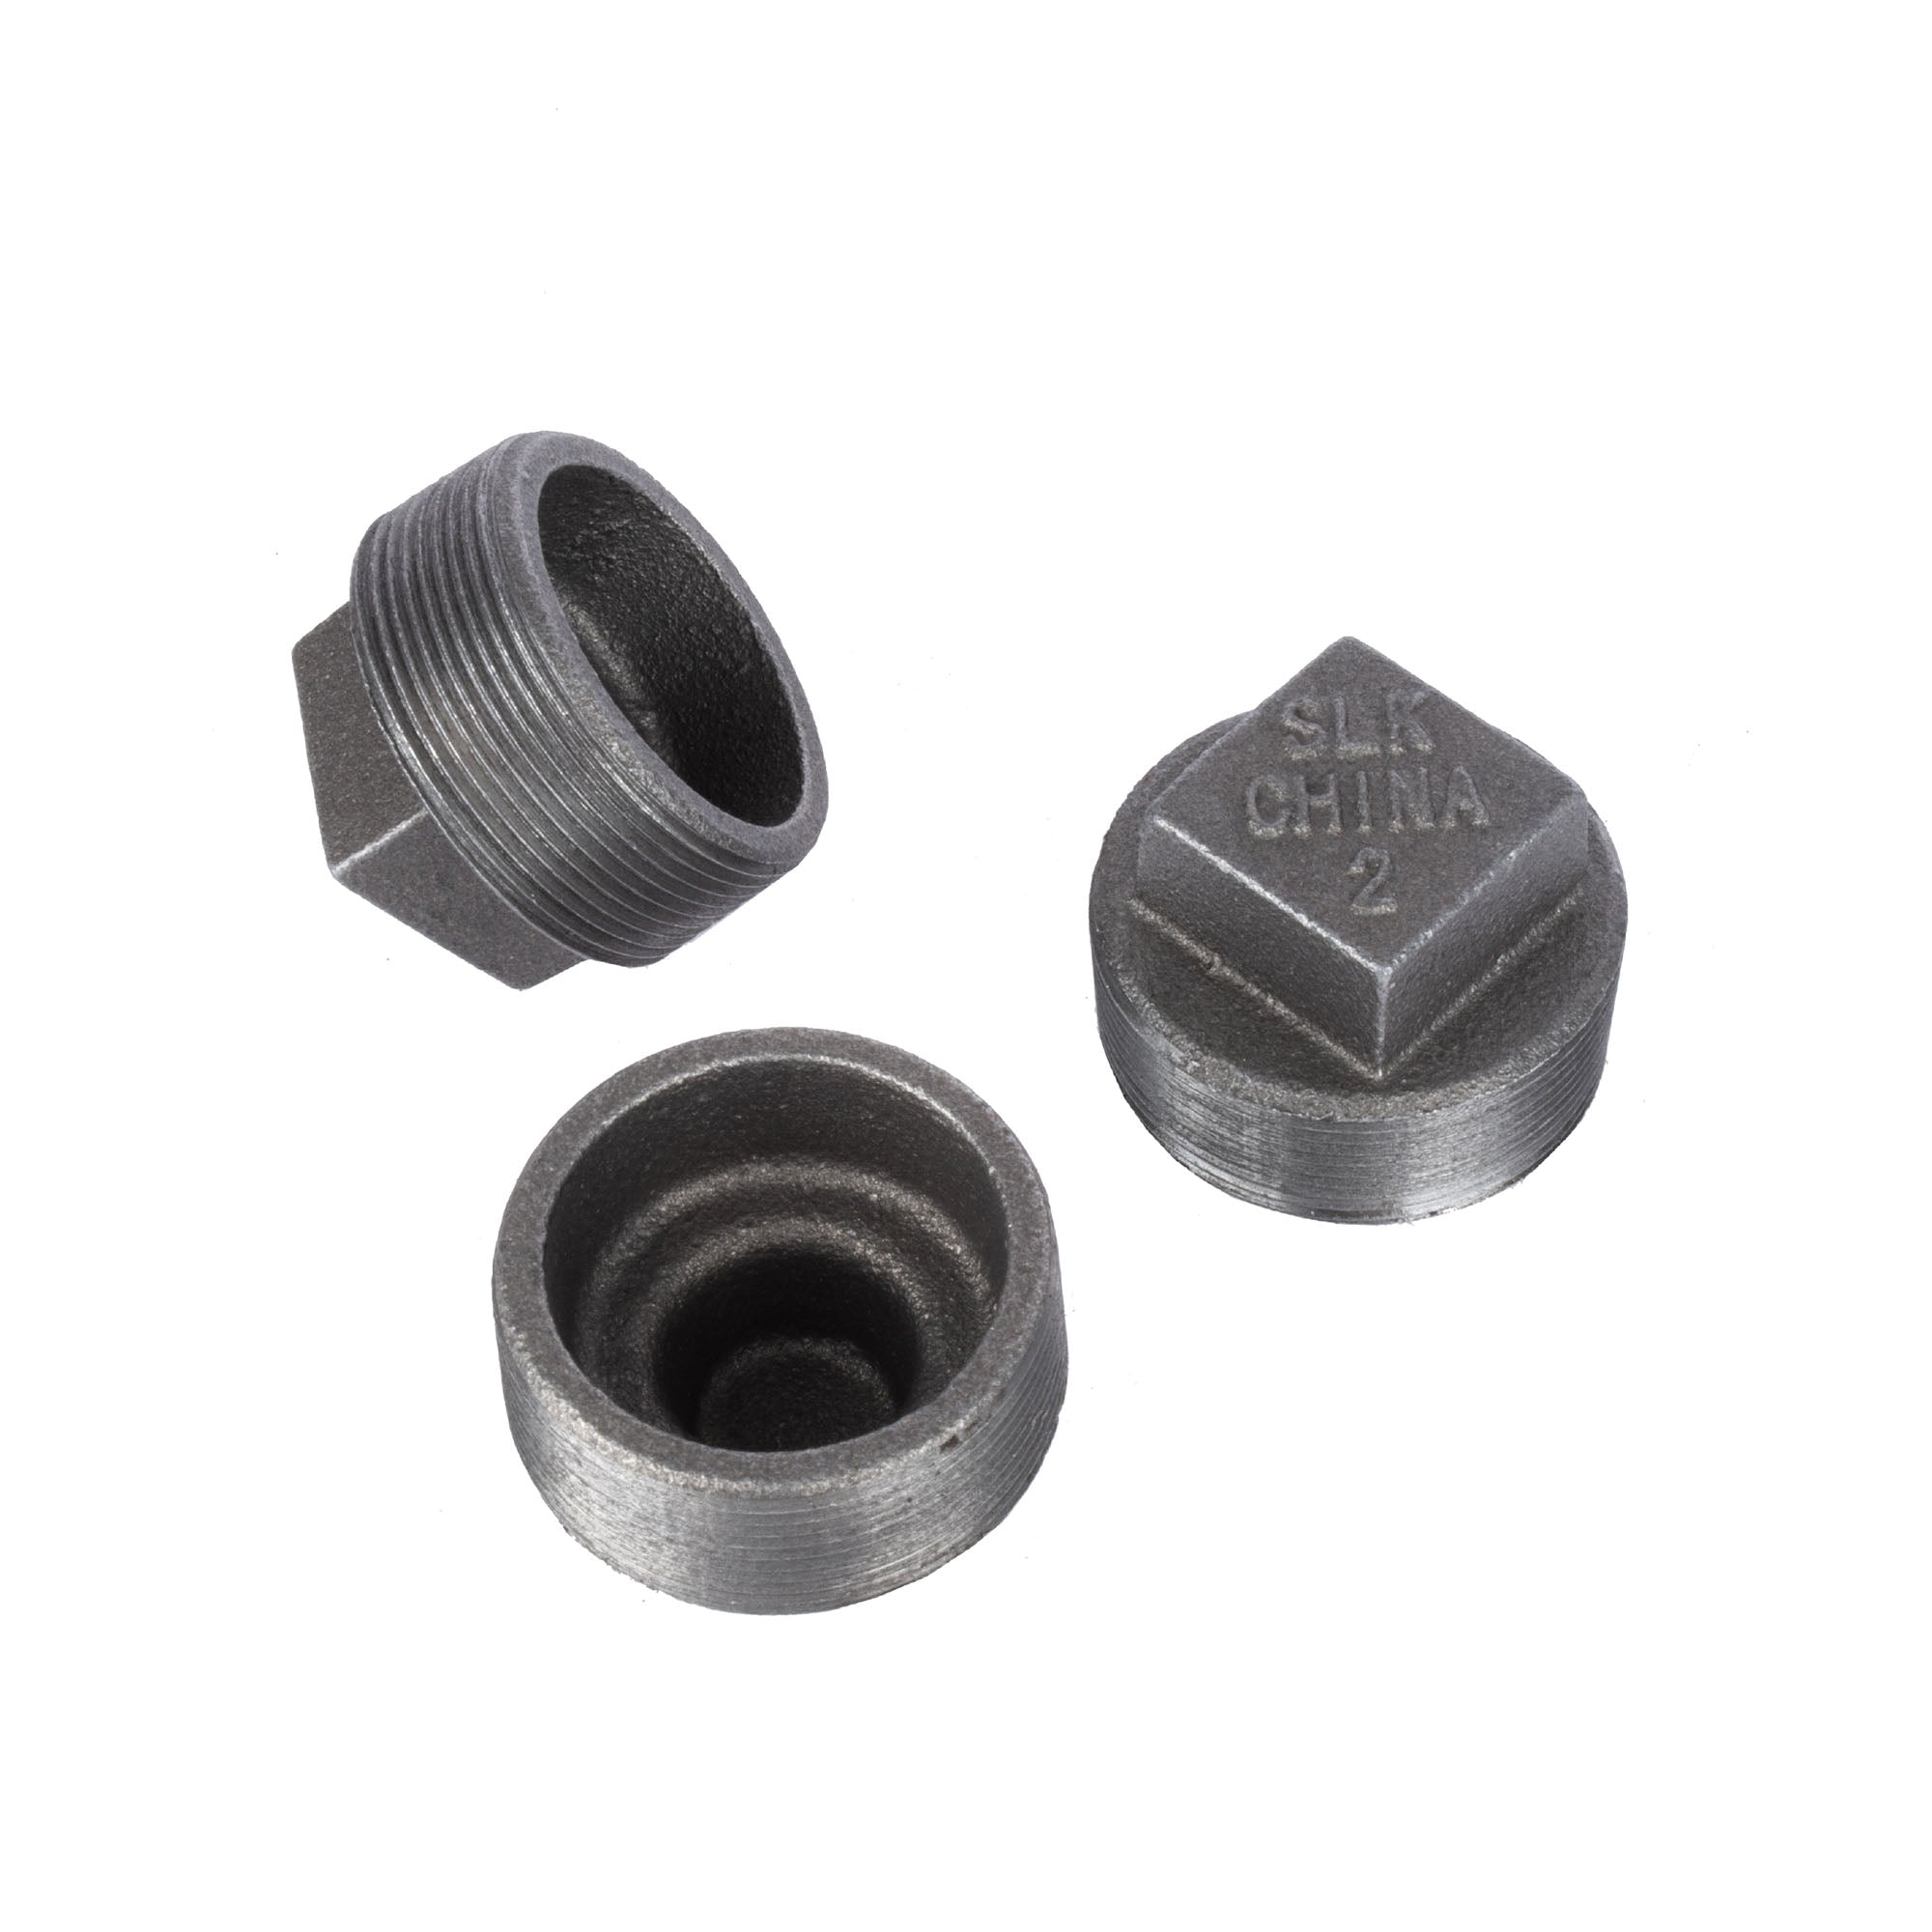 2 In Black Plug - Pipe Decor